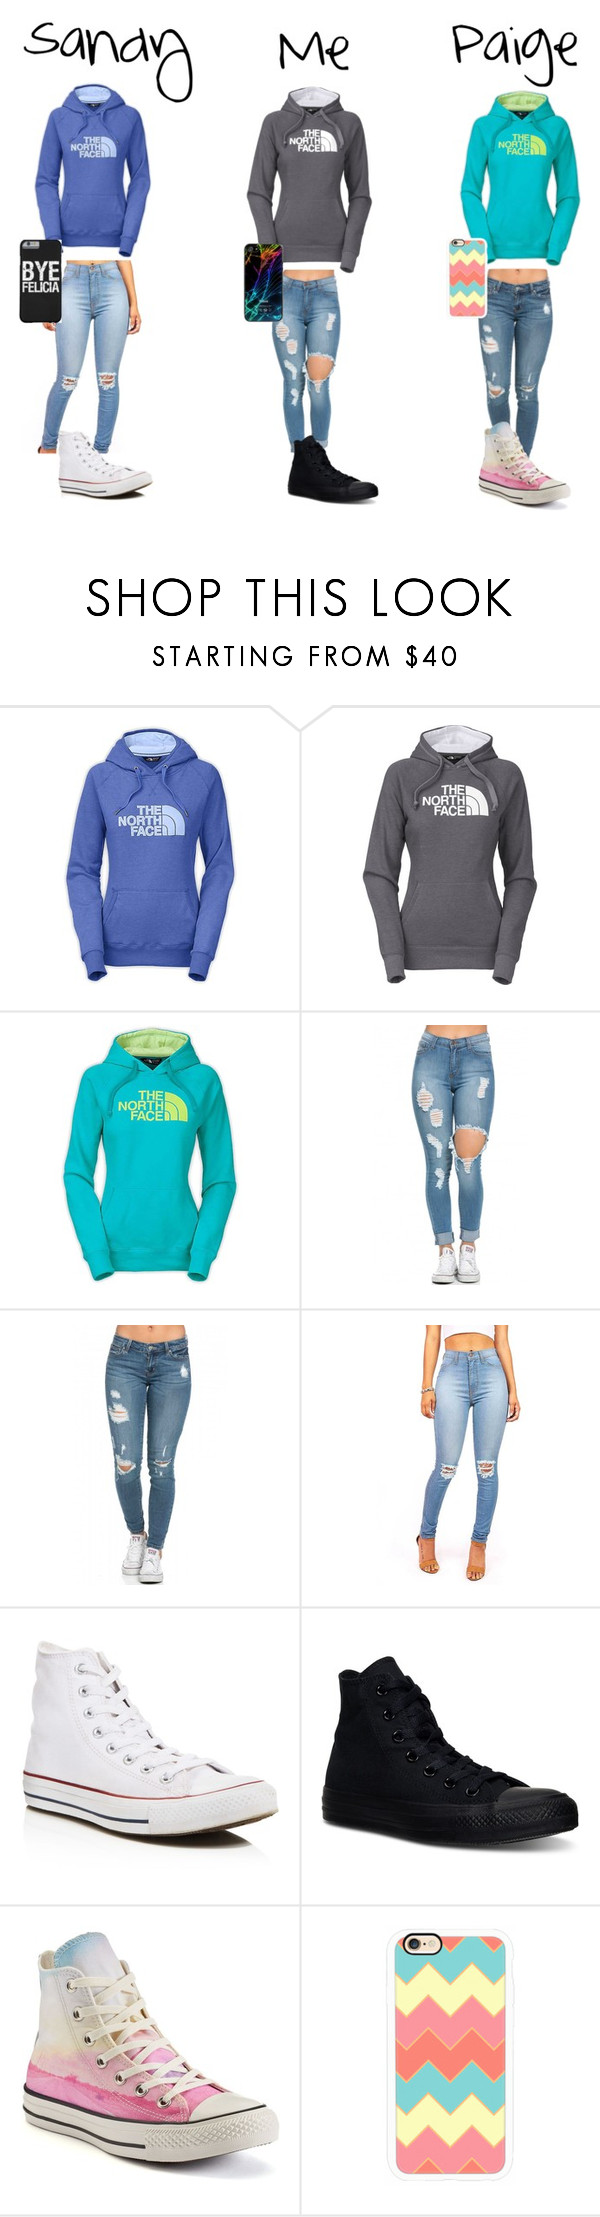 """""""Luv u girls❤️❤️"""" by karhoades-2 ❤ liked on Polyvore featuring The North Face, Converse and Casetify"""